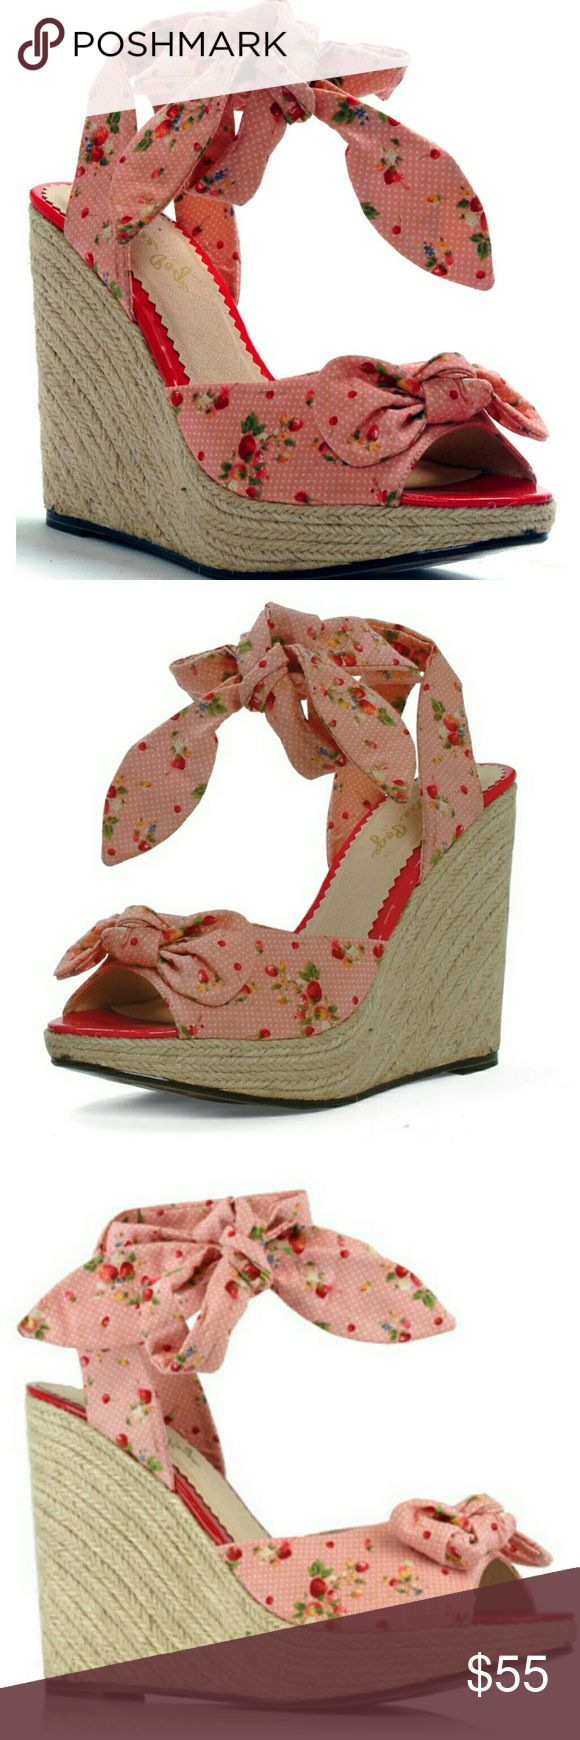 Strawberry PinkBettie Page Wedges Brand New, unused Strawberry Bettie Page Wedges Size 10! Bettie Page  Shoes Wedges